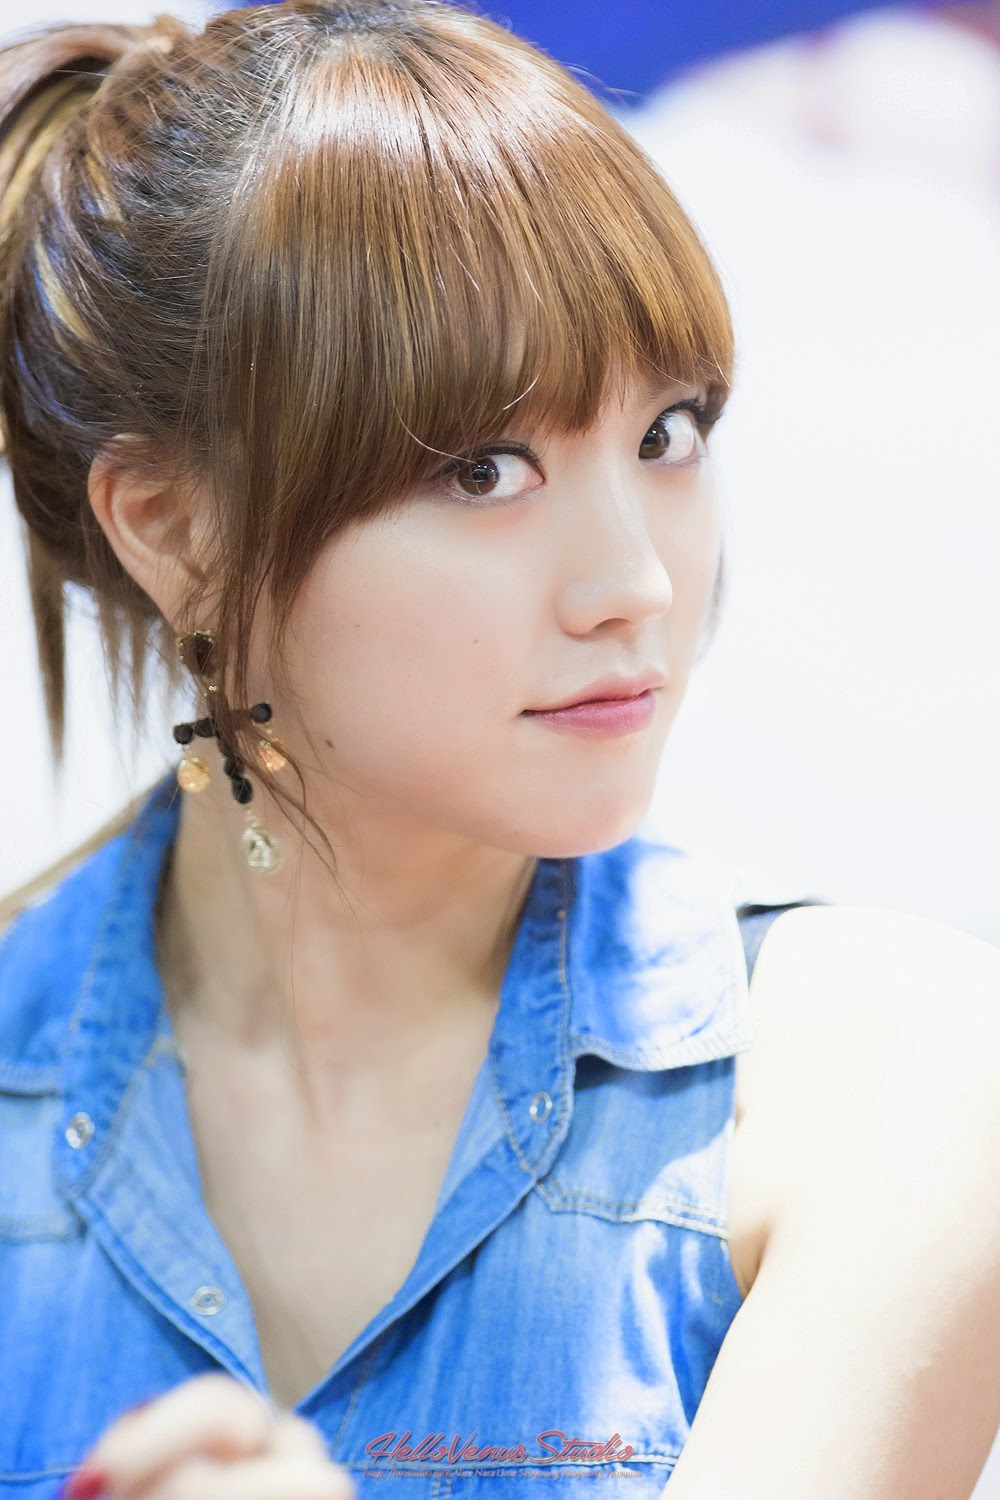 Lime HelloVenus